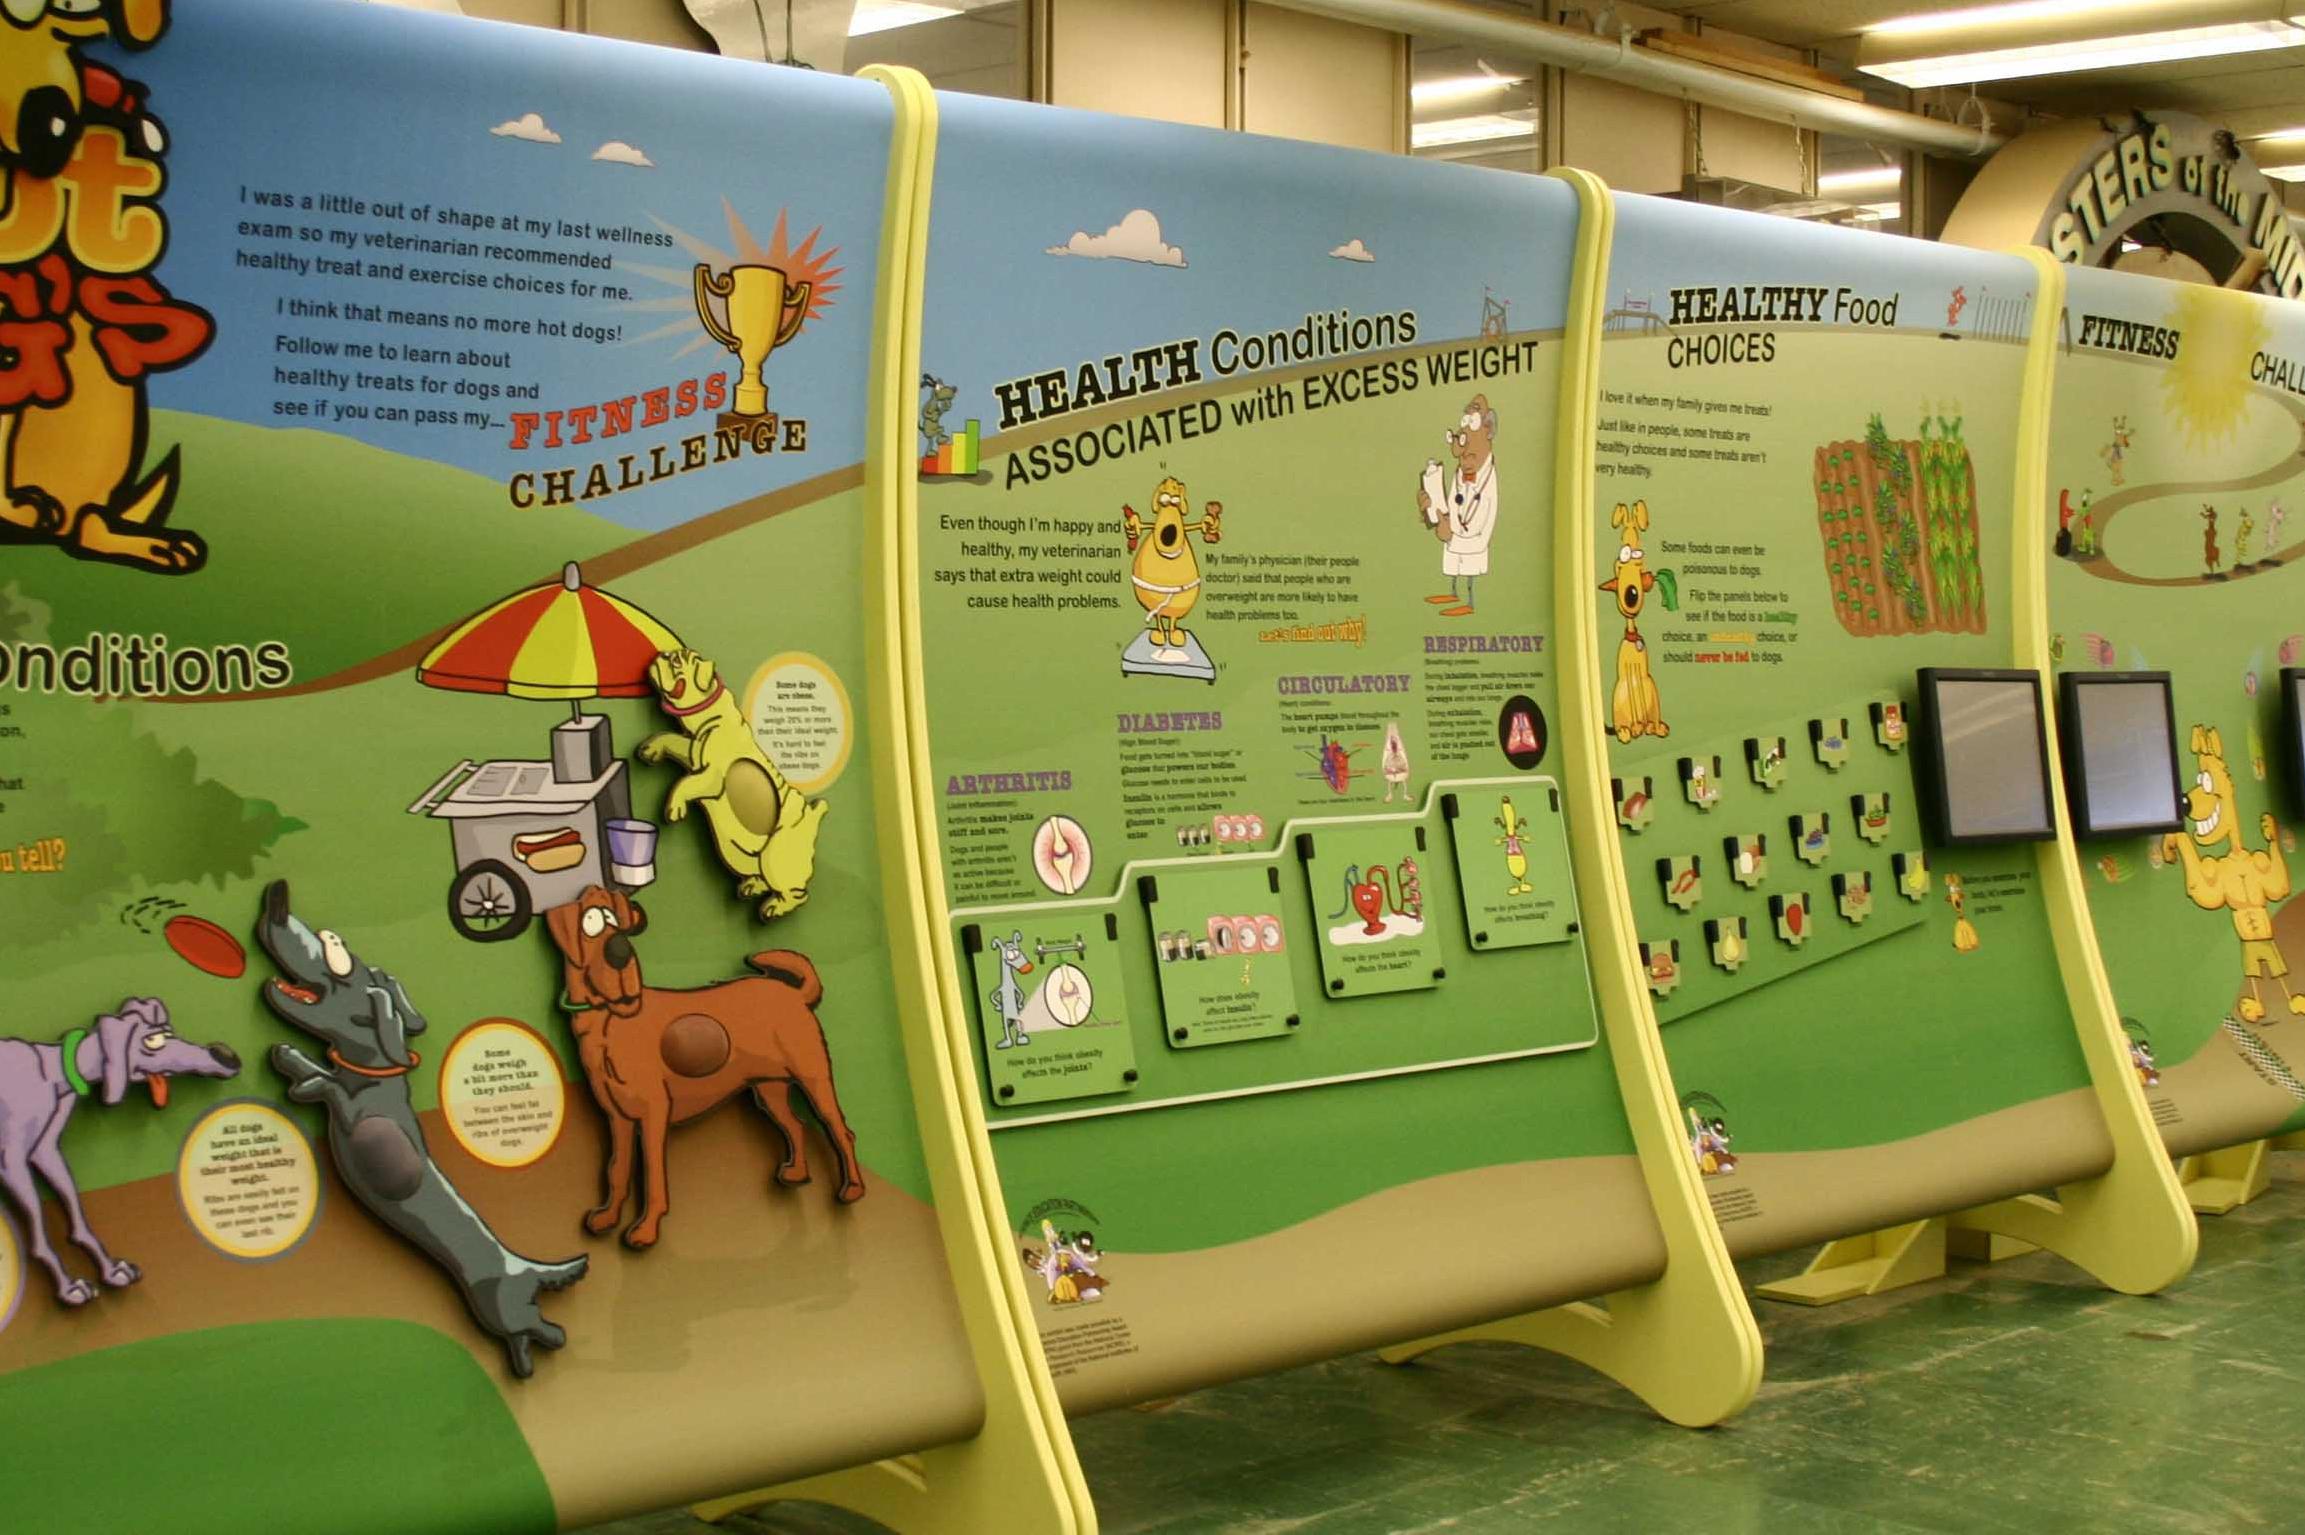 Purdue Exhibit Shows How To Make Better Food Choices Purdue University